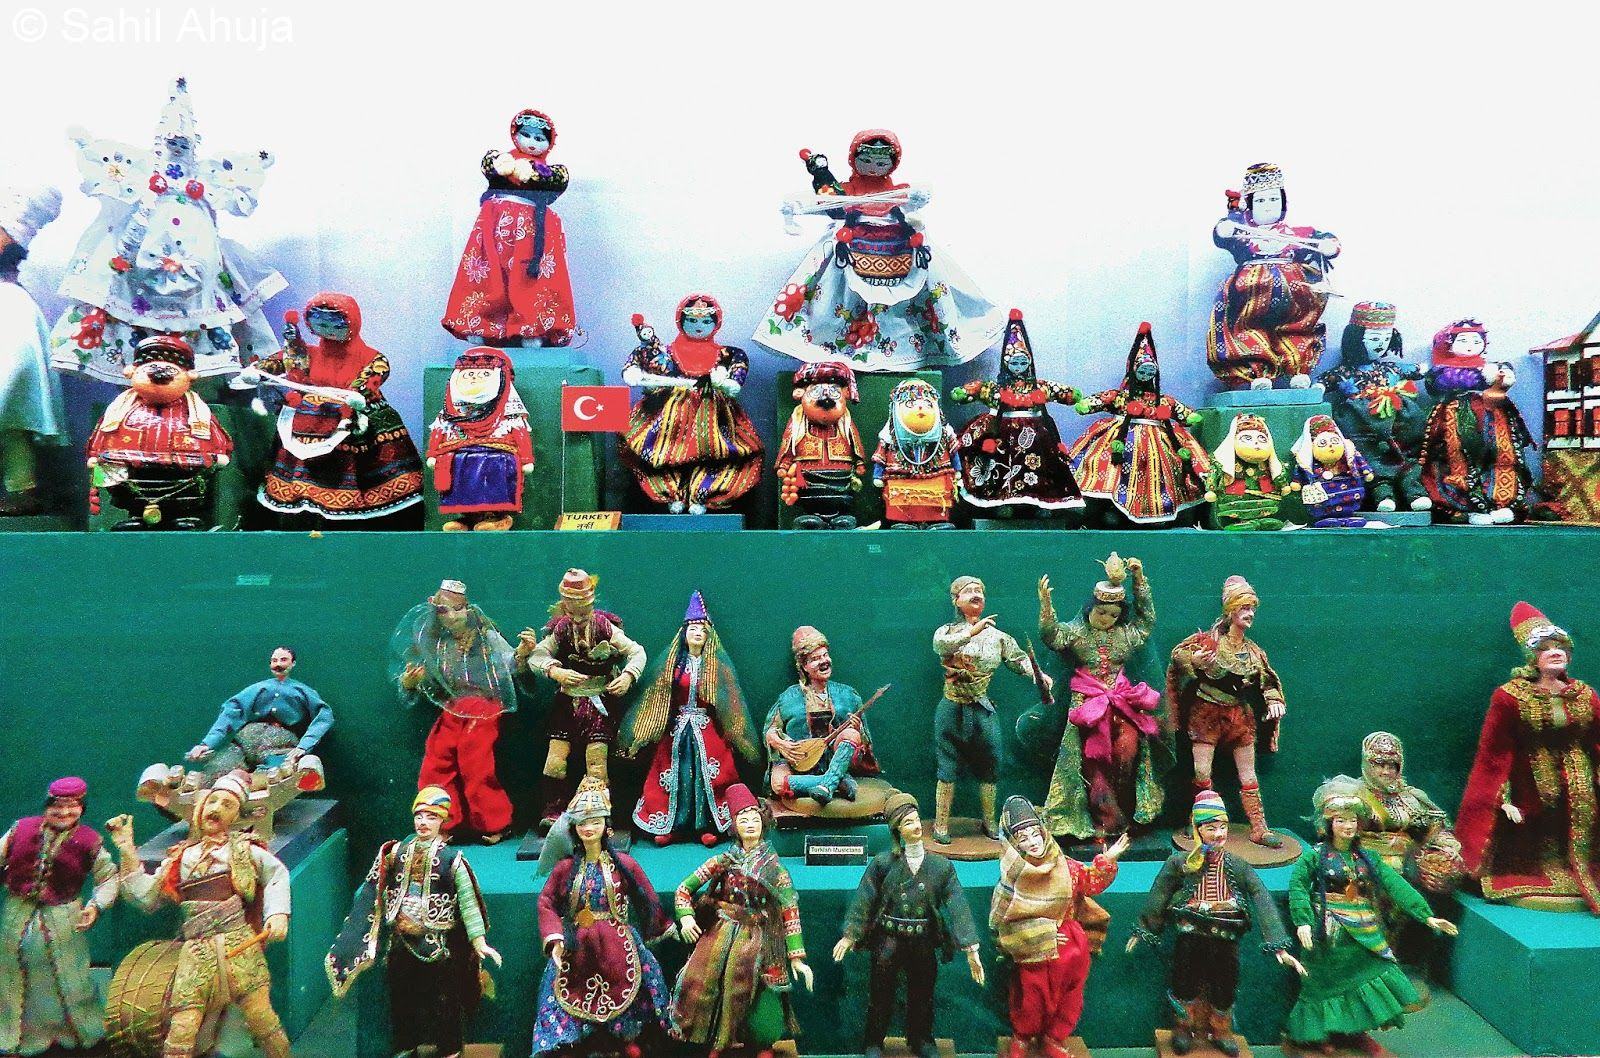 10 Best Places To Visit In Chandigarh, India / International Doll Museum